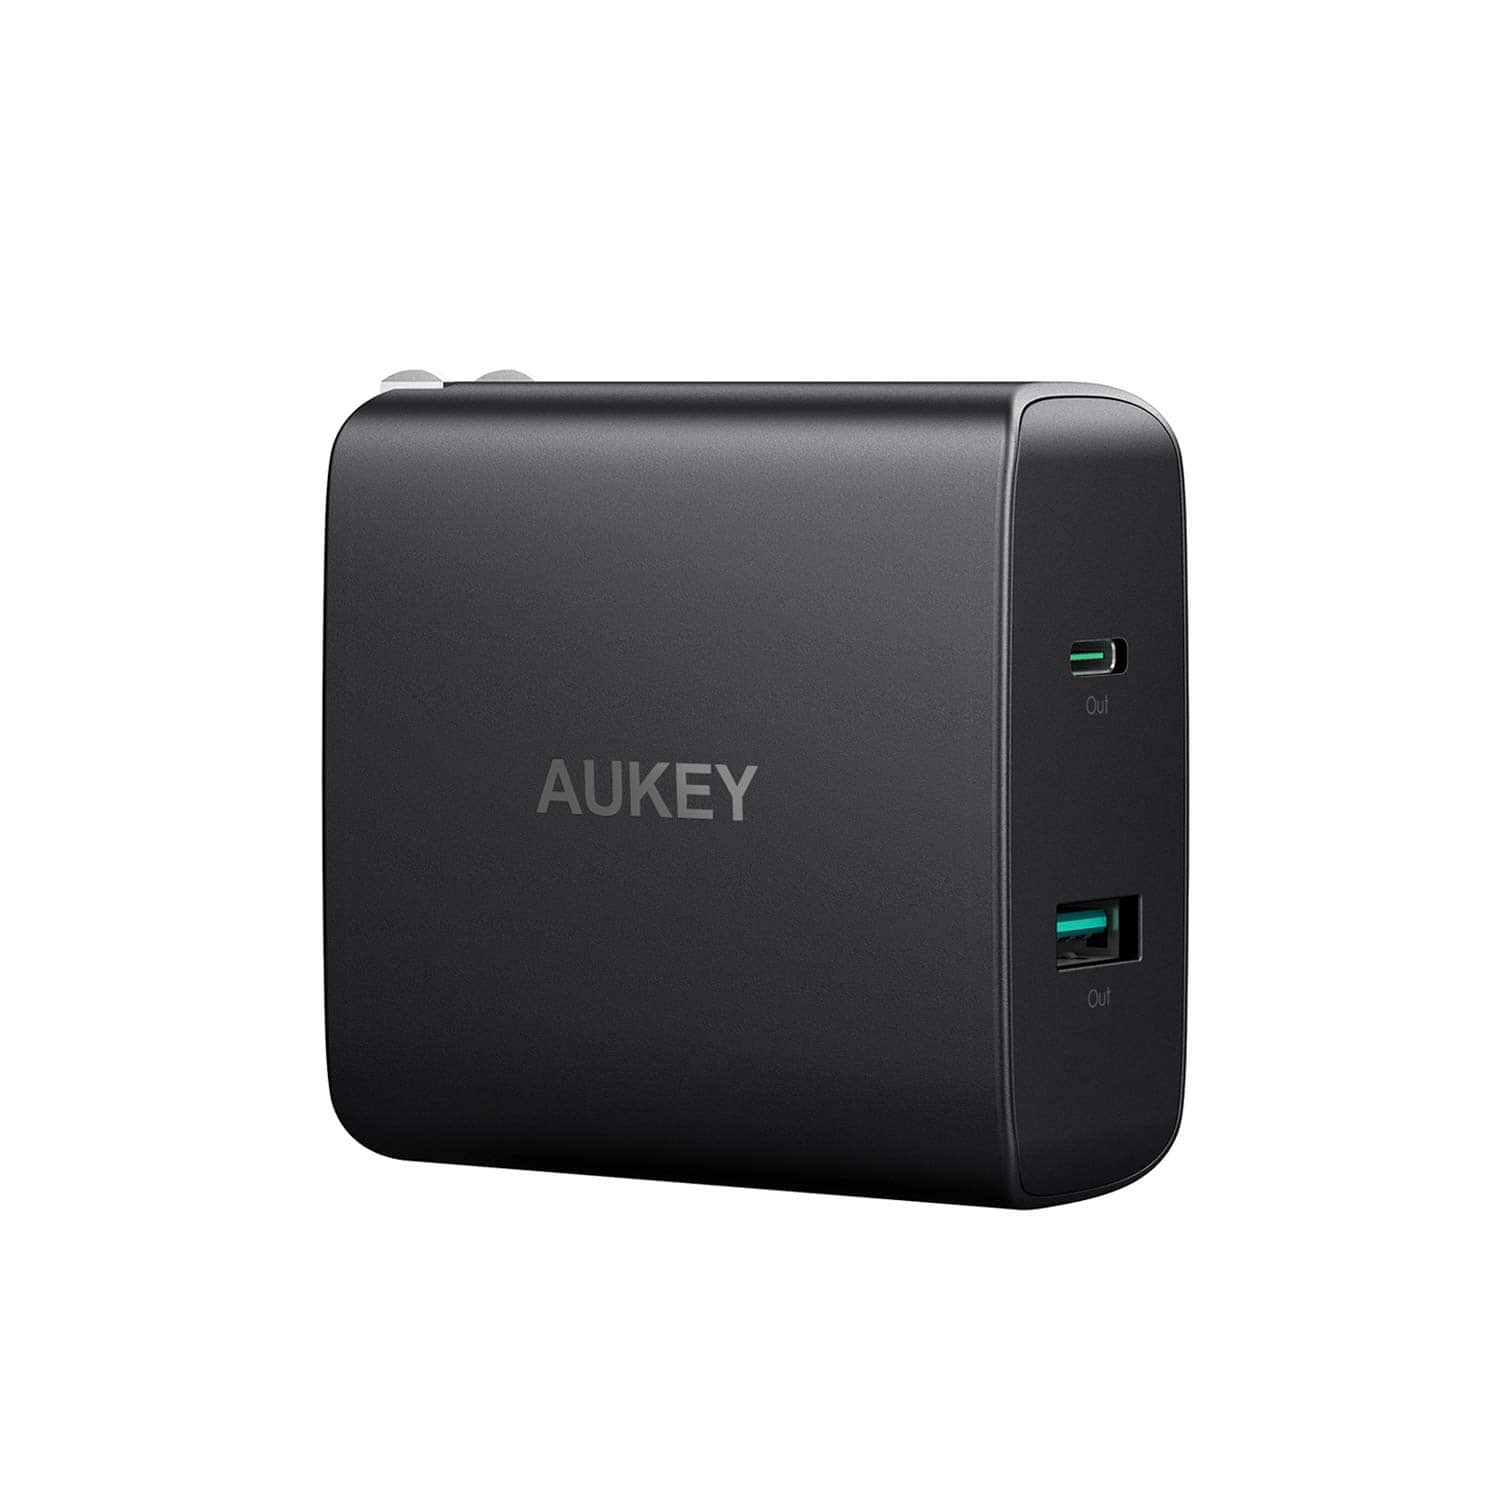 AUKEY USB C Charger with 46W Power Delivery 3.0 & 5V / 2.1A Ports USB Wall Charger $22.78